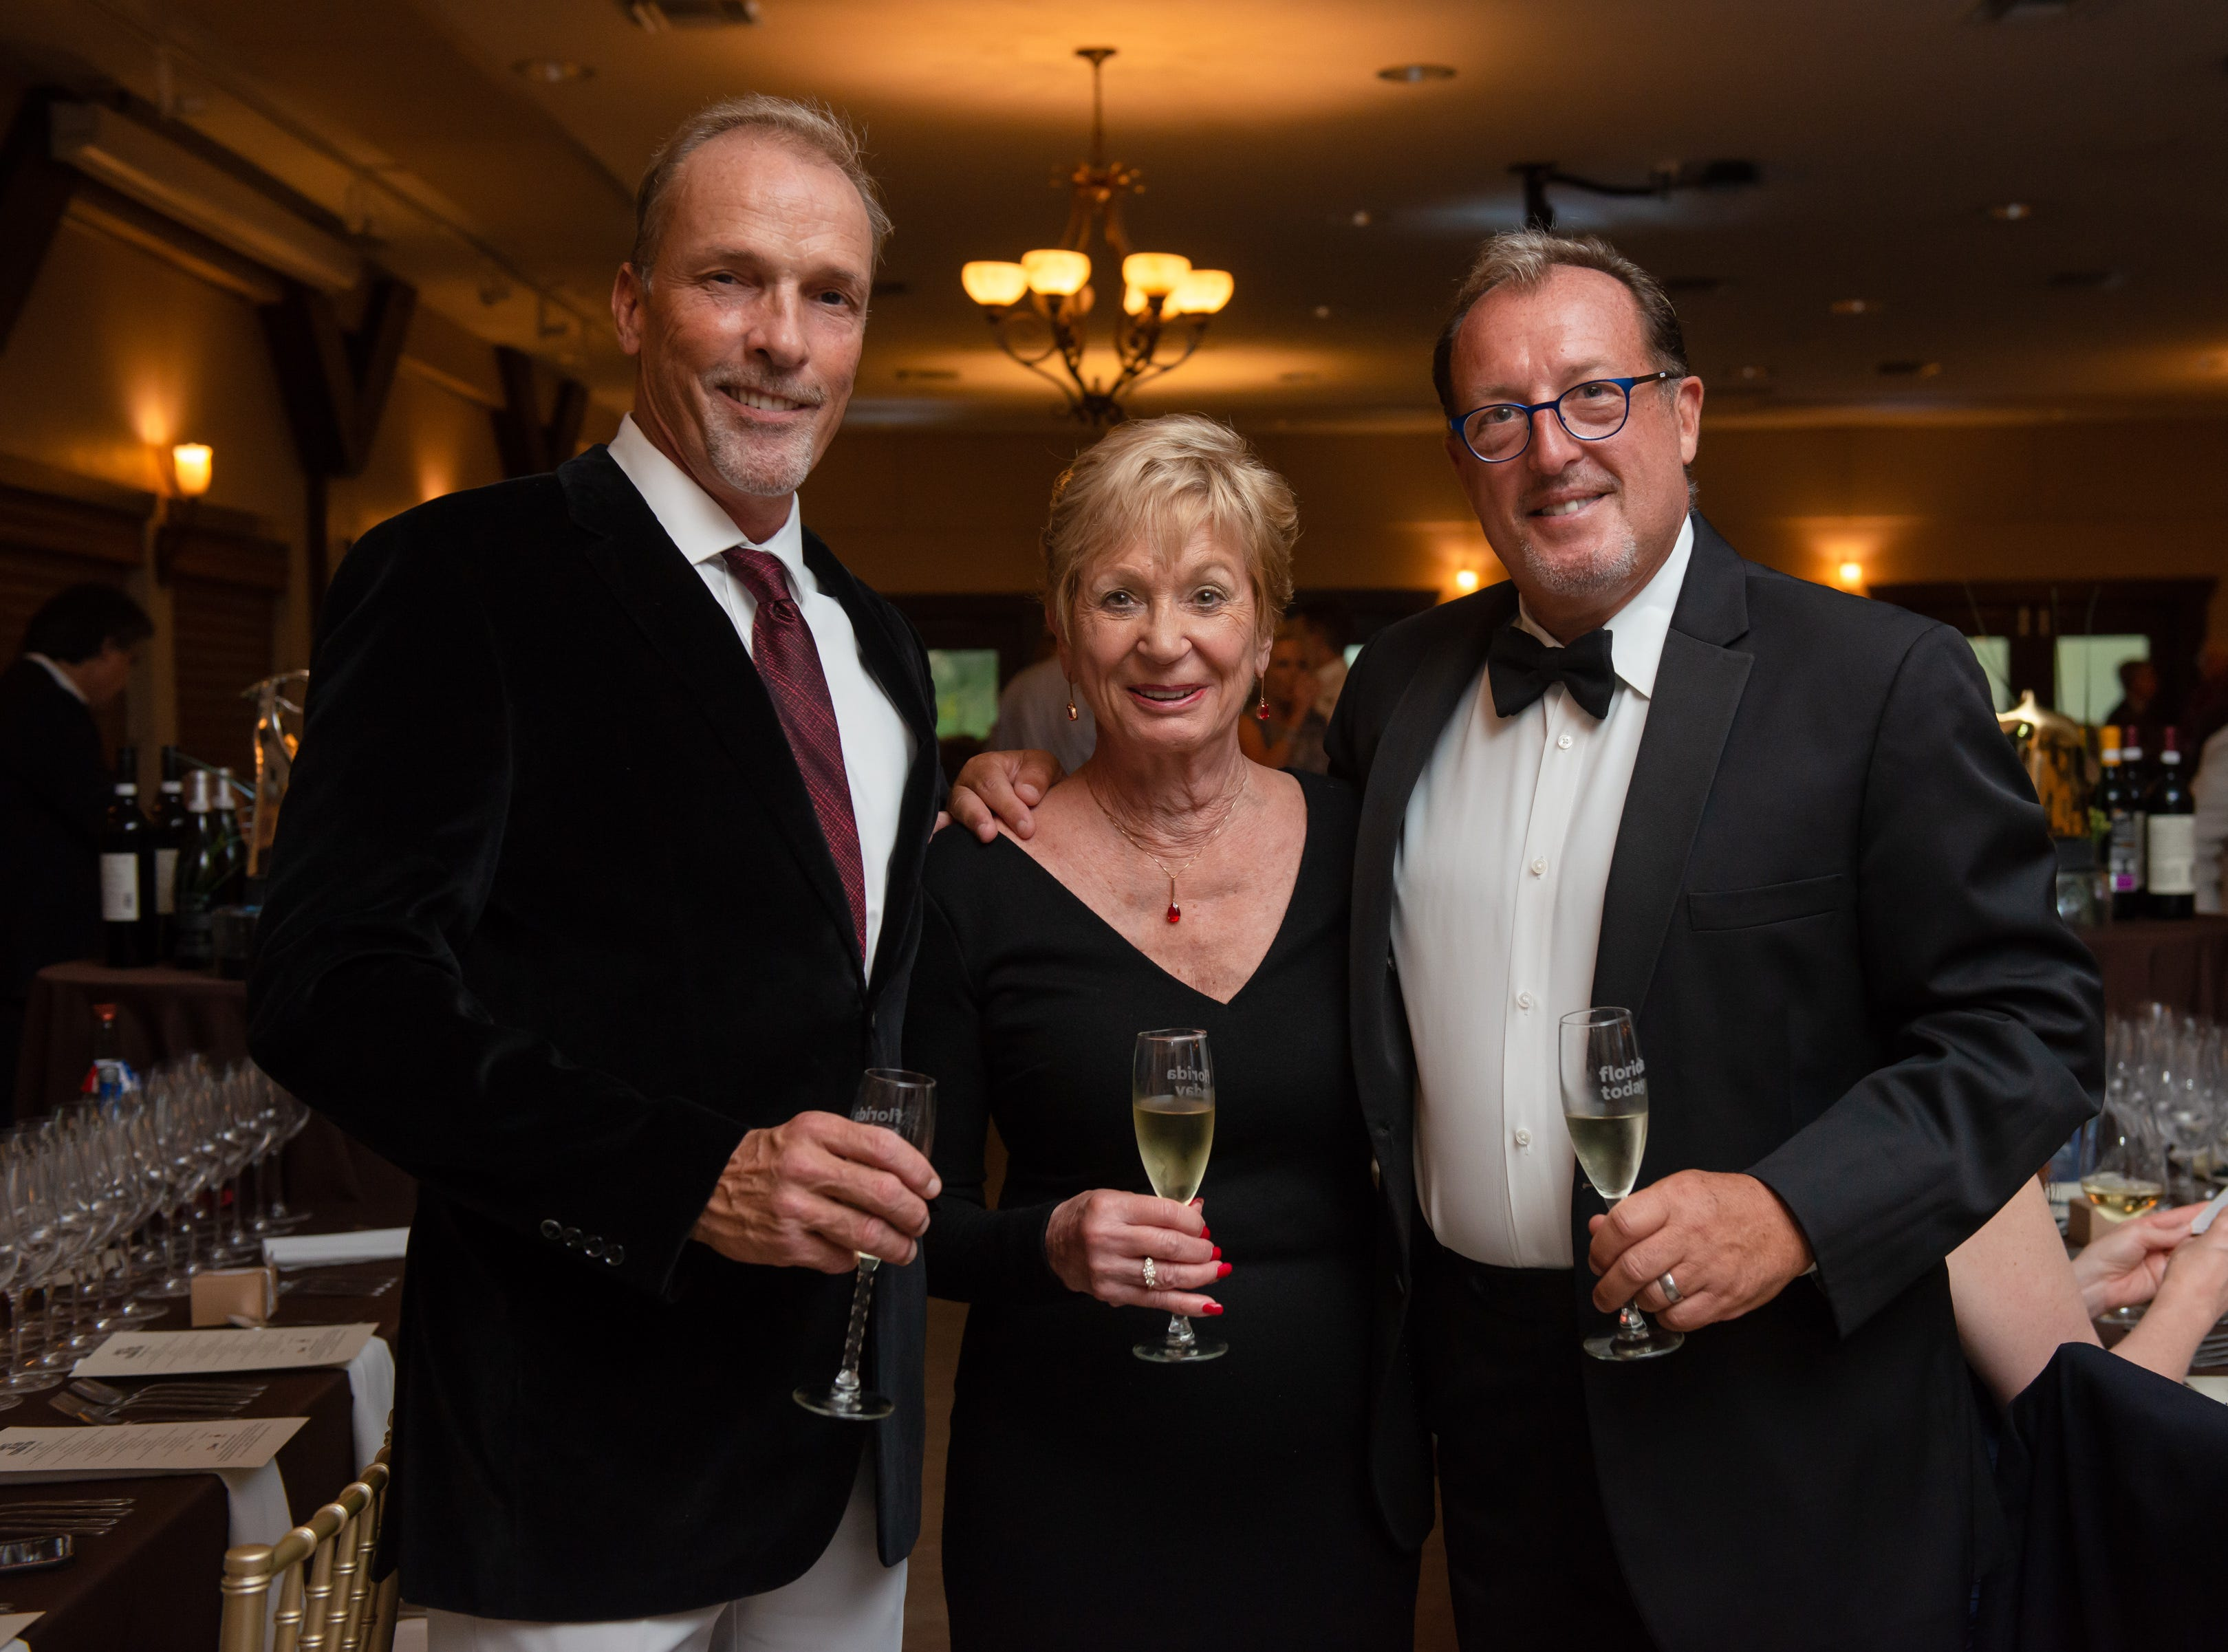 Scott Earick, Hank Hutson and Marilyn Cannon at the James Beard Foundation Celebrity Chef Dinner held at the Brevard Zoo. (Photo by Amanda Stratford, for FLORIDA TODAY)